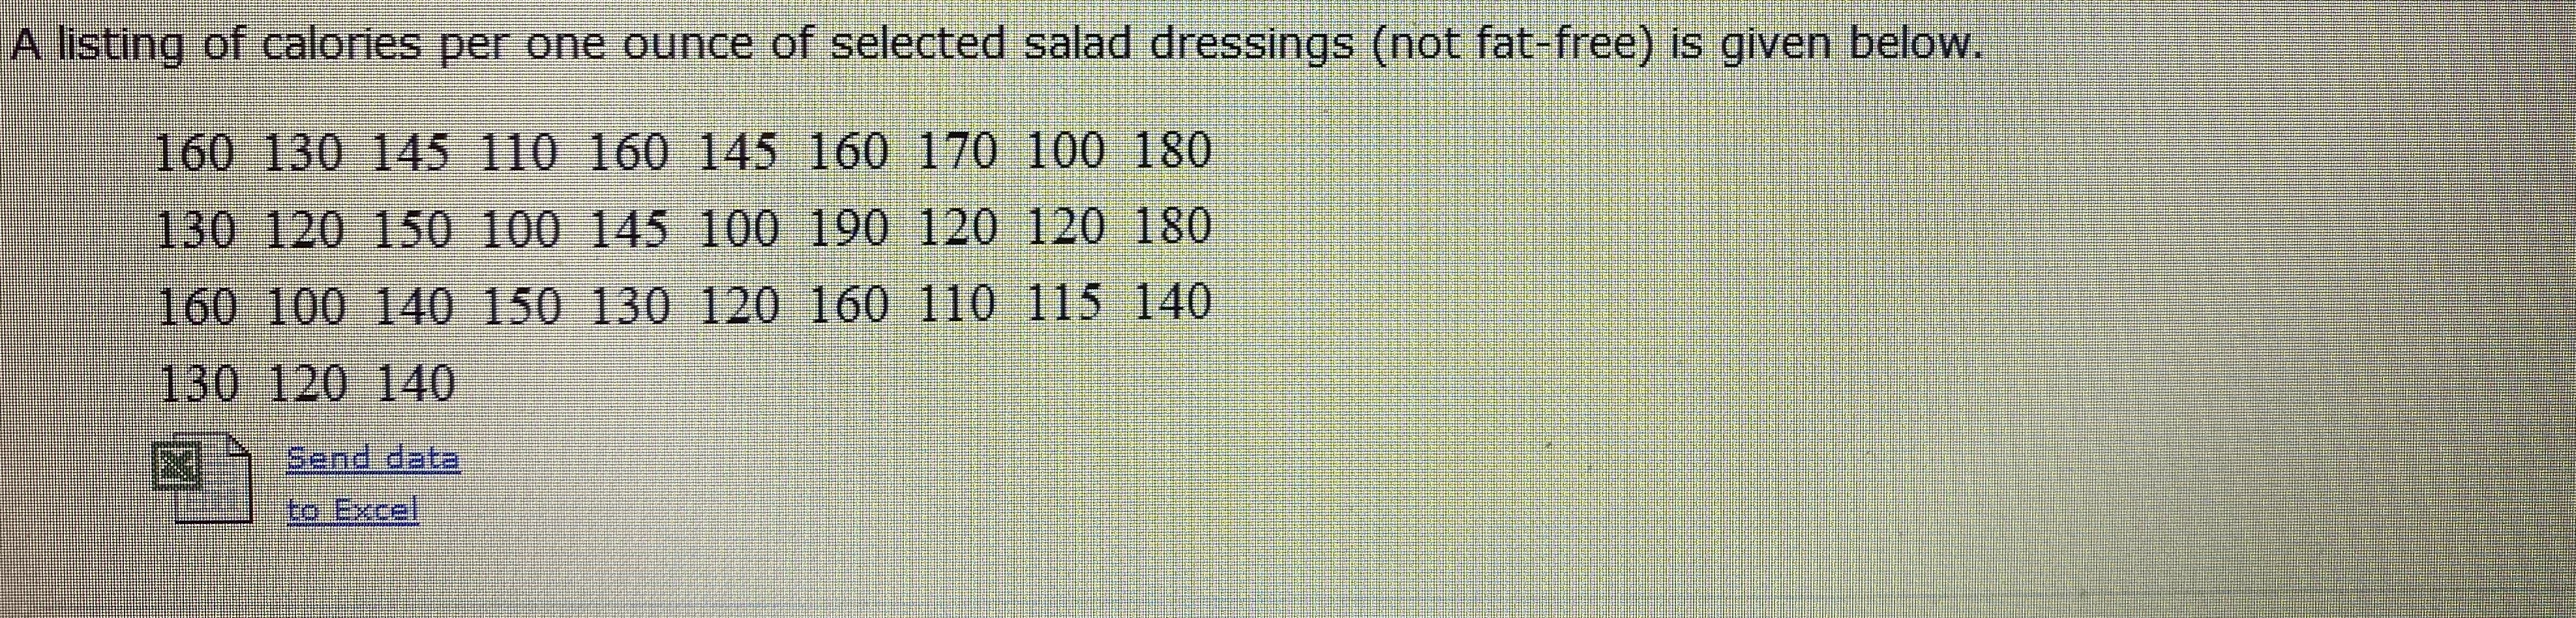 A listing of calories per one ounce of selected salad dressings (not fat-free) is given below. 160 130 145 110 160 145 160 170 100 180 130 120 150 100 145 100 190 120 120 180 160 100 140 150 130 120 160 110 115 140 130 120 140 Send data to Excel